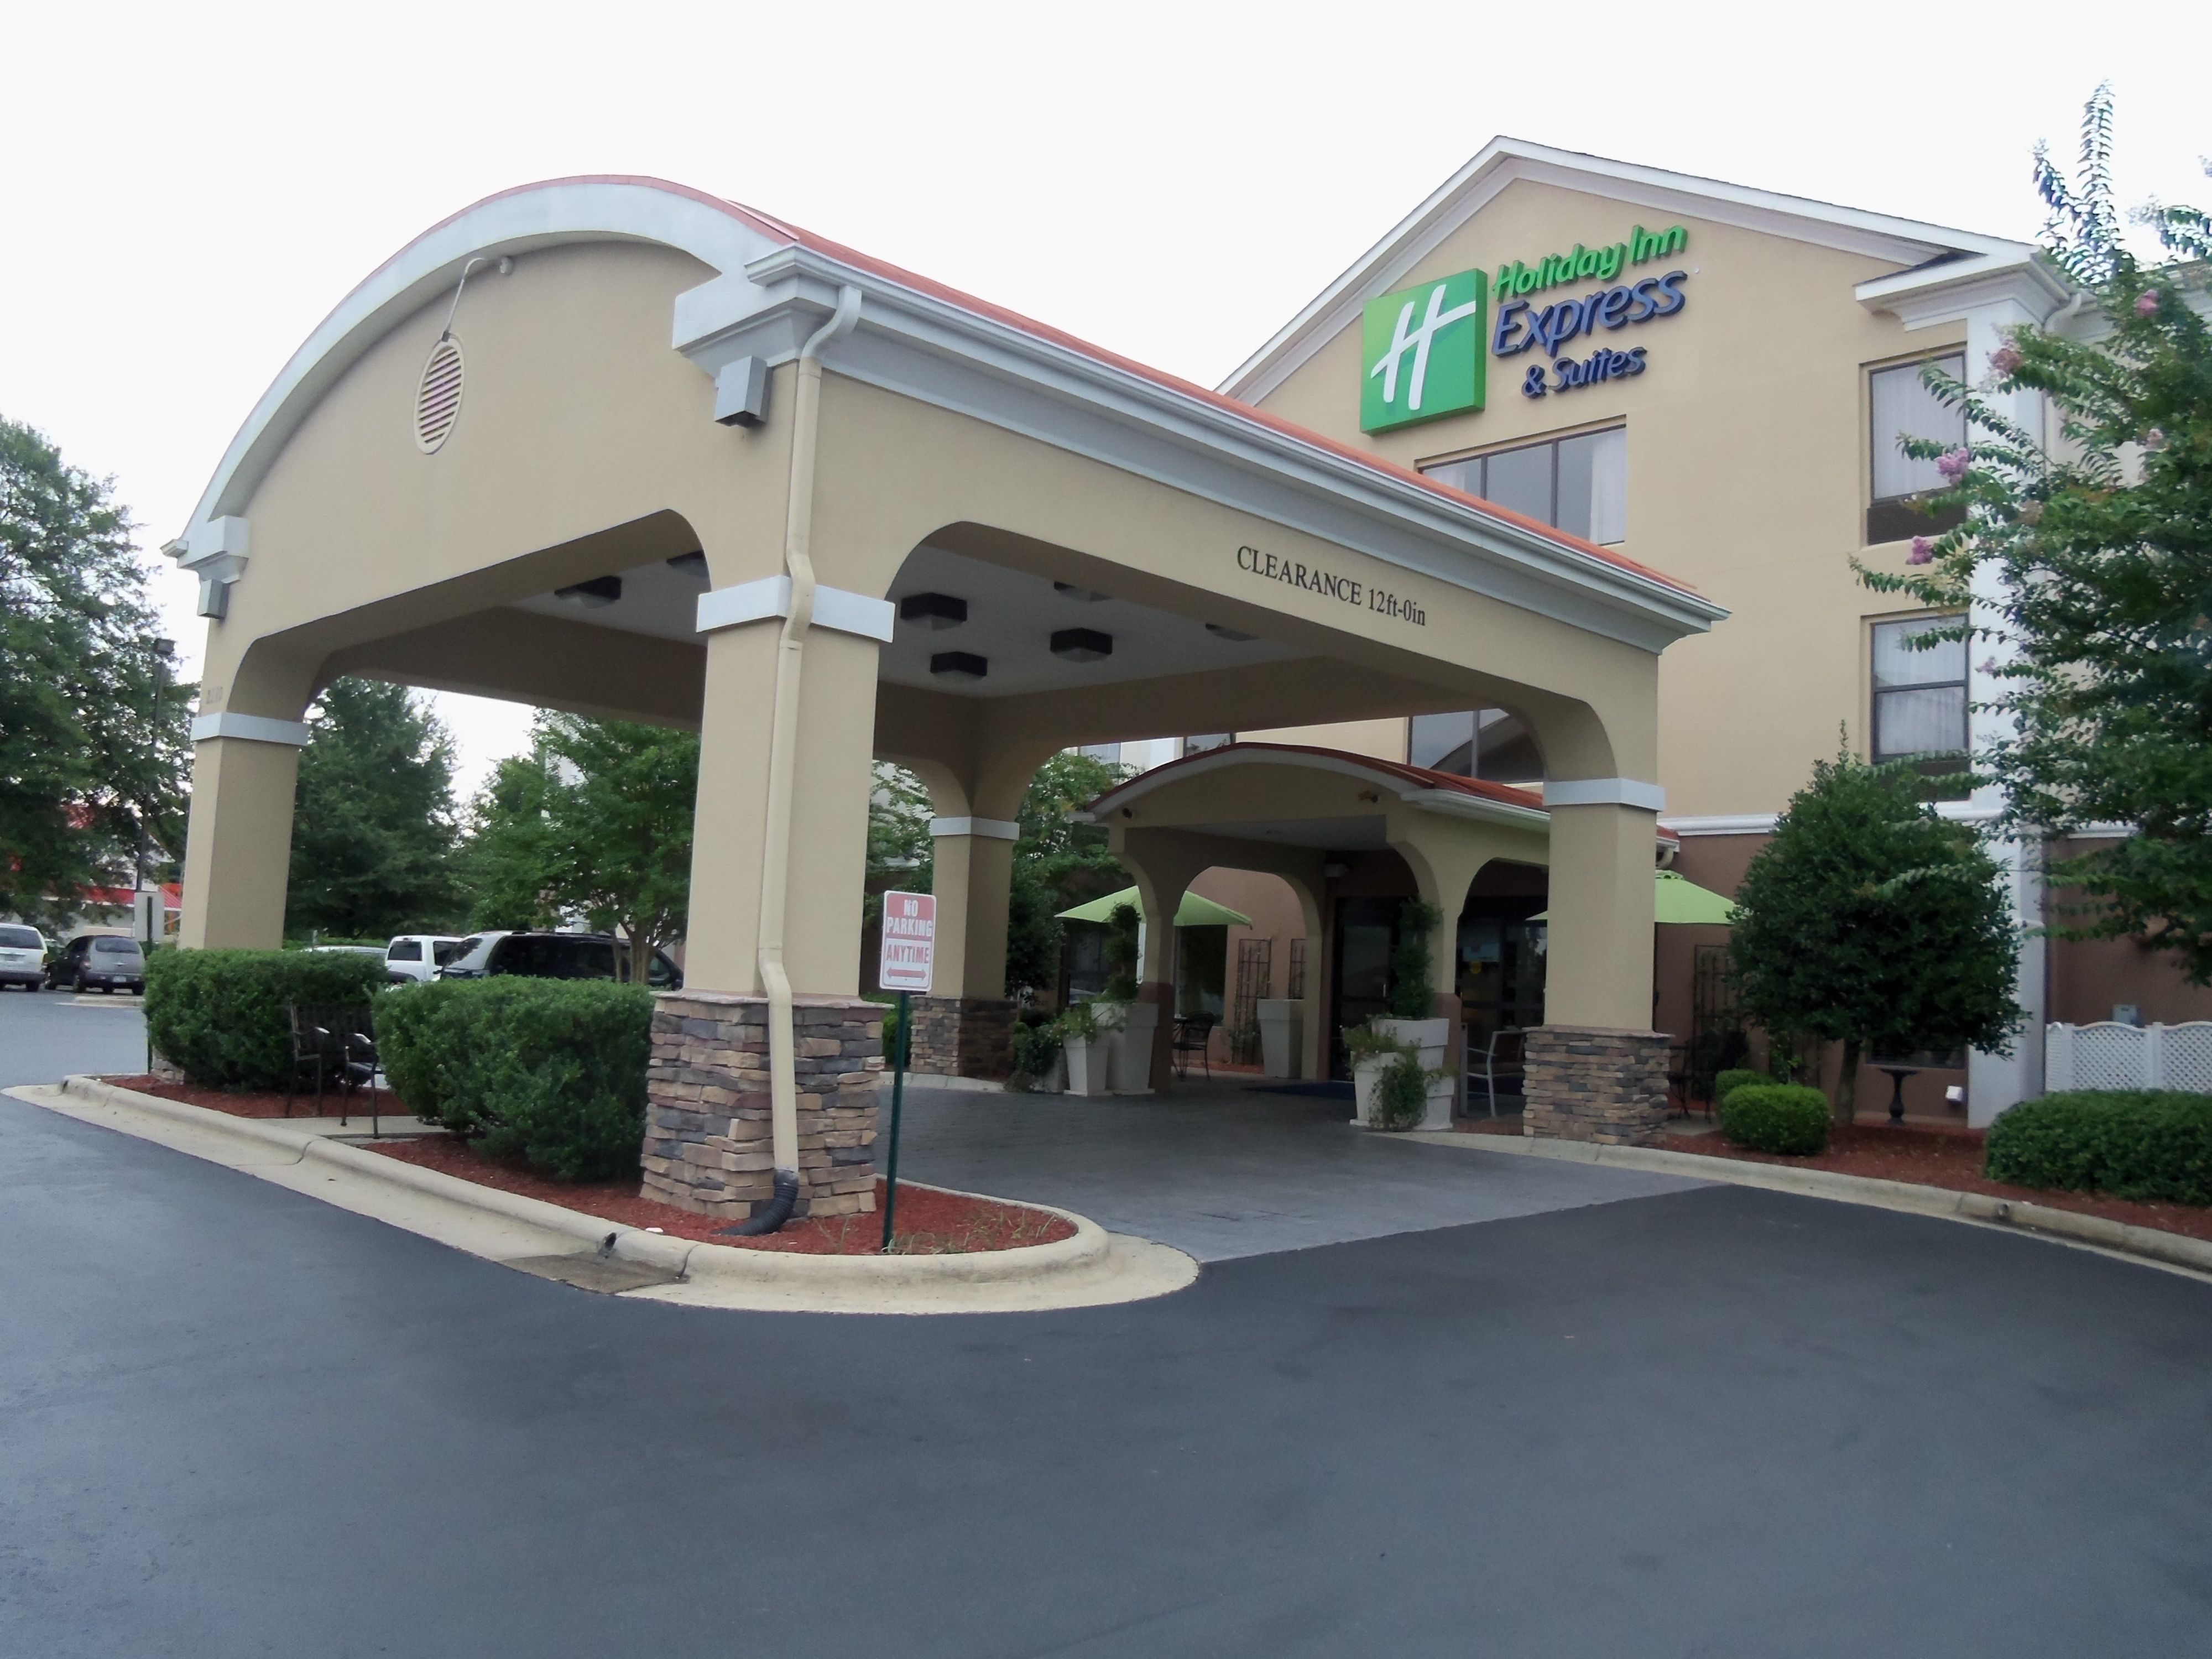 Holiday Inn Express Suites Sandy South Salt Lake City